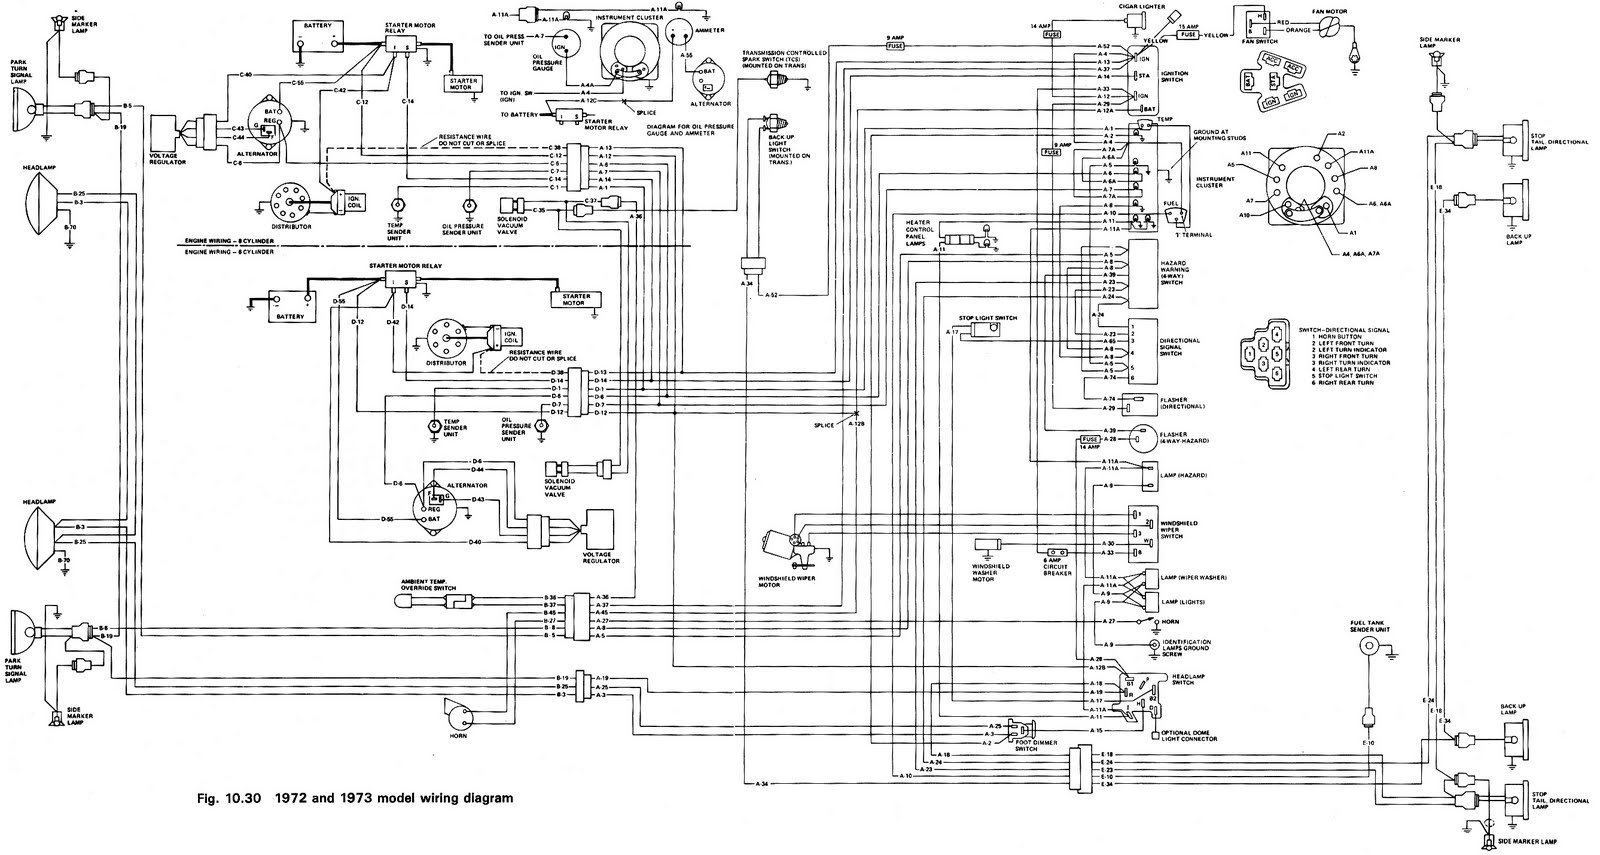 medium resolution of 1970 cj5 wiring diagram cj 1976 1977jpg 1959 cj5 wiring schematic jeep cj5 wiring schematic